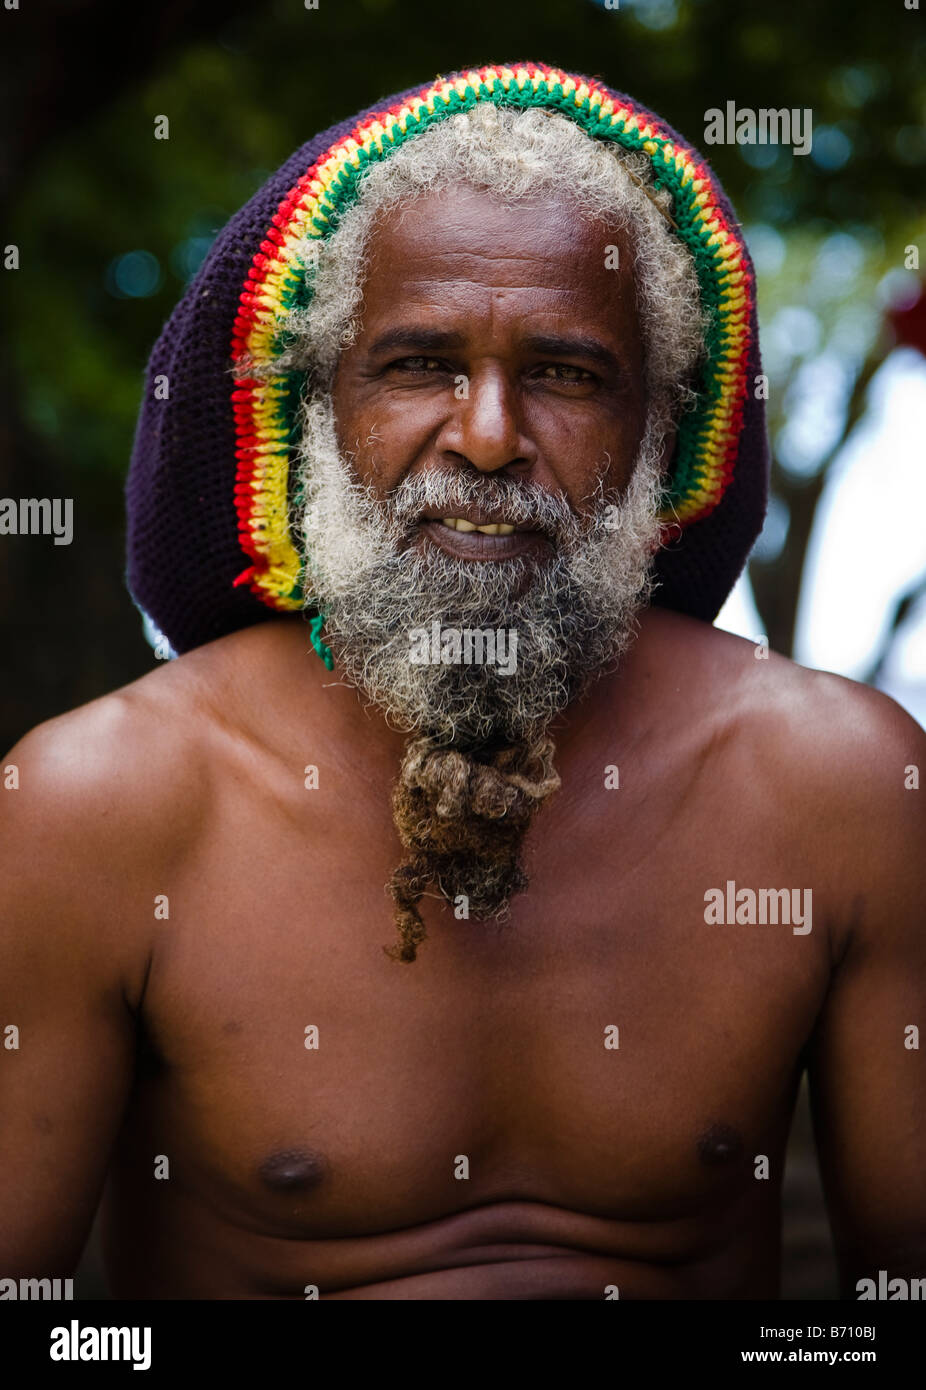 Man with rastafarian hat and hair style in Mauritius Stock ...